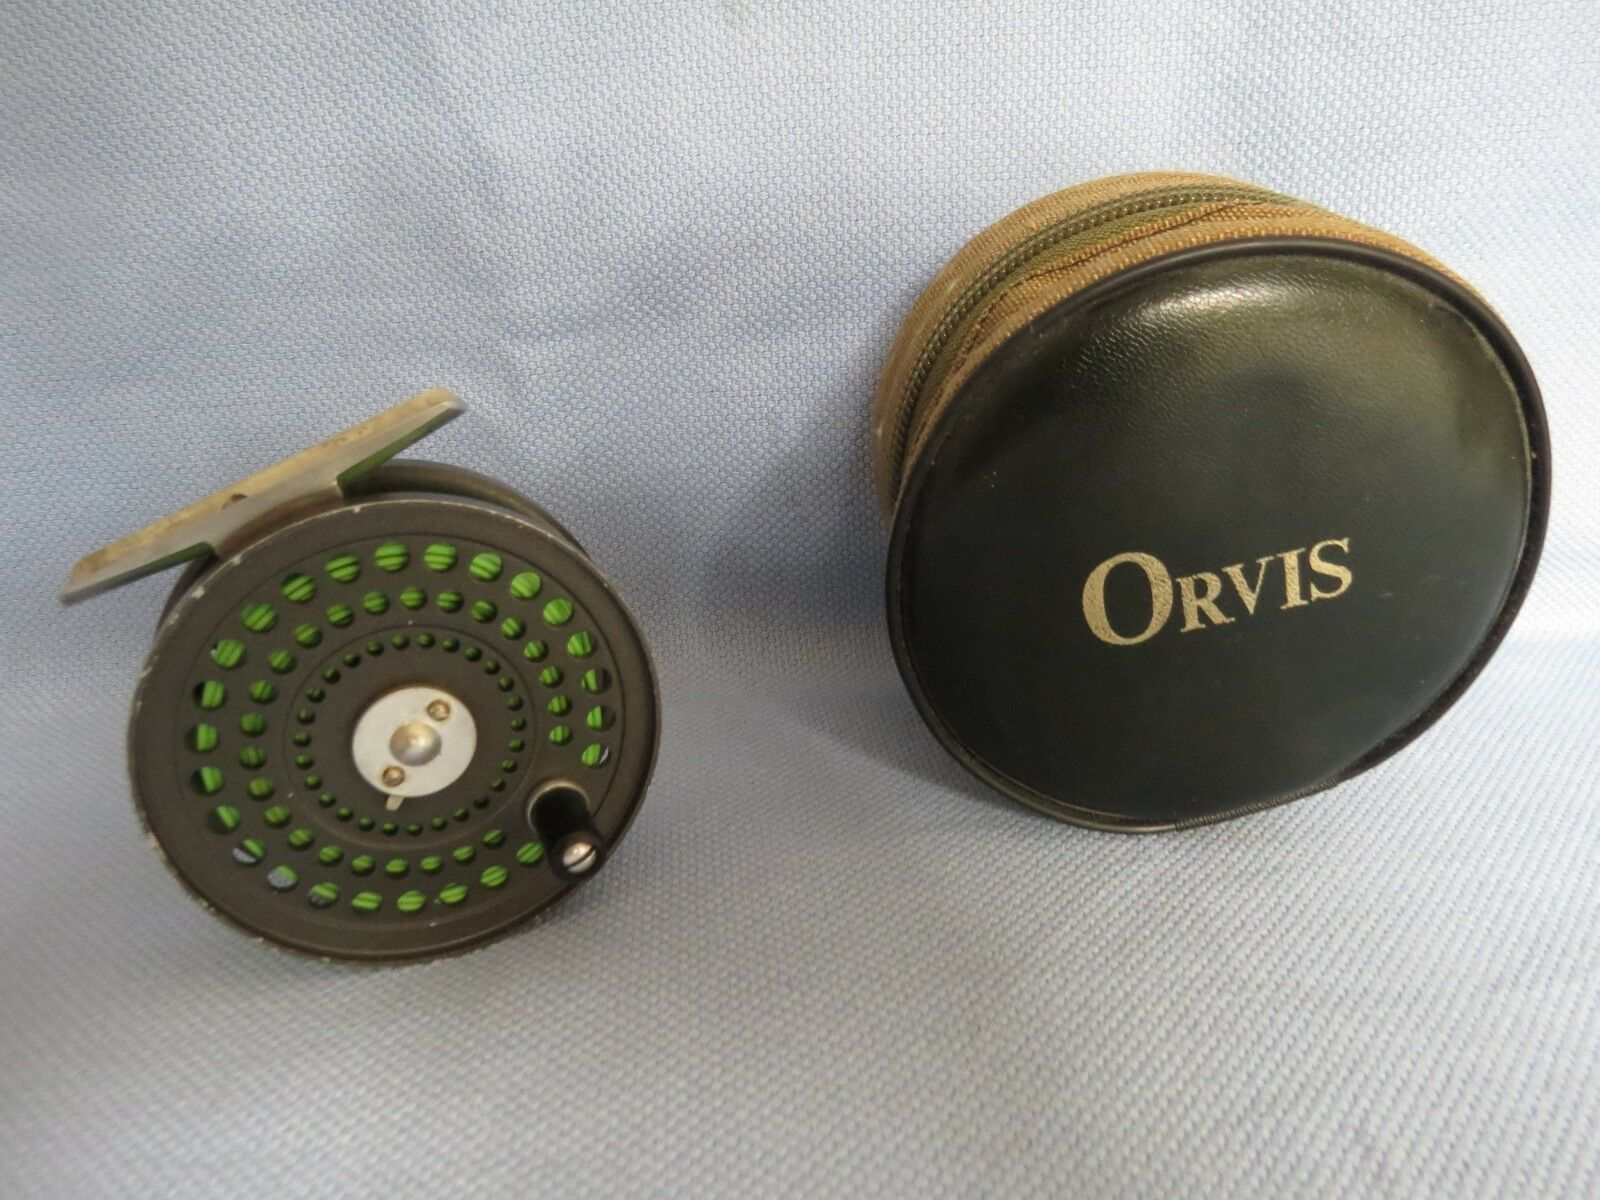 ORVIS CFO 111 TROUT REEL IN ORVIS POUCH   MADE IN ENGLAND  with 60% off discount